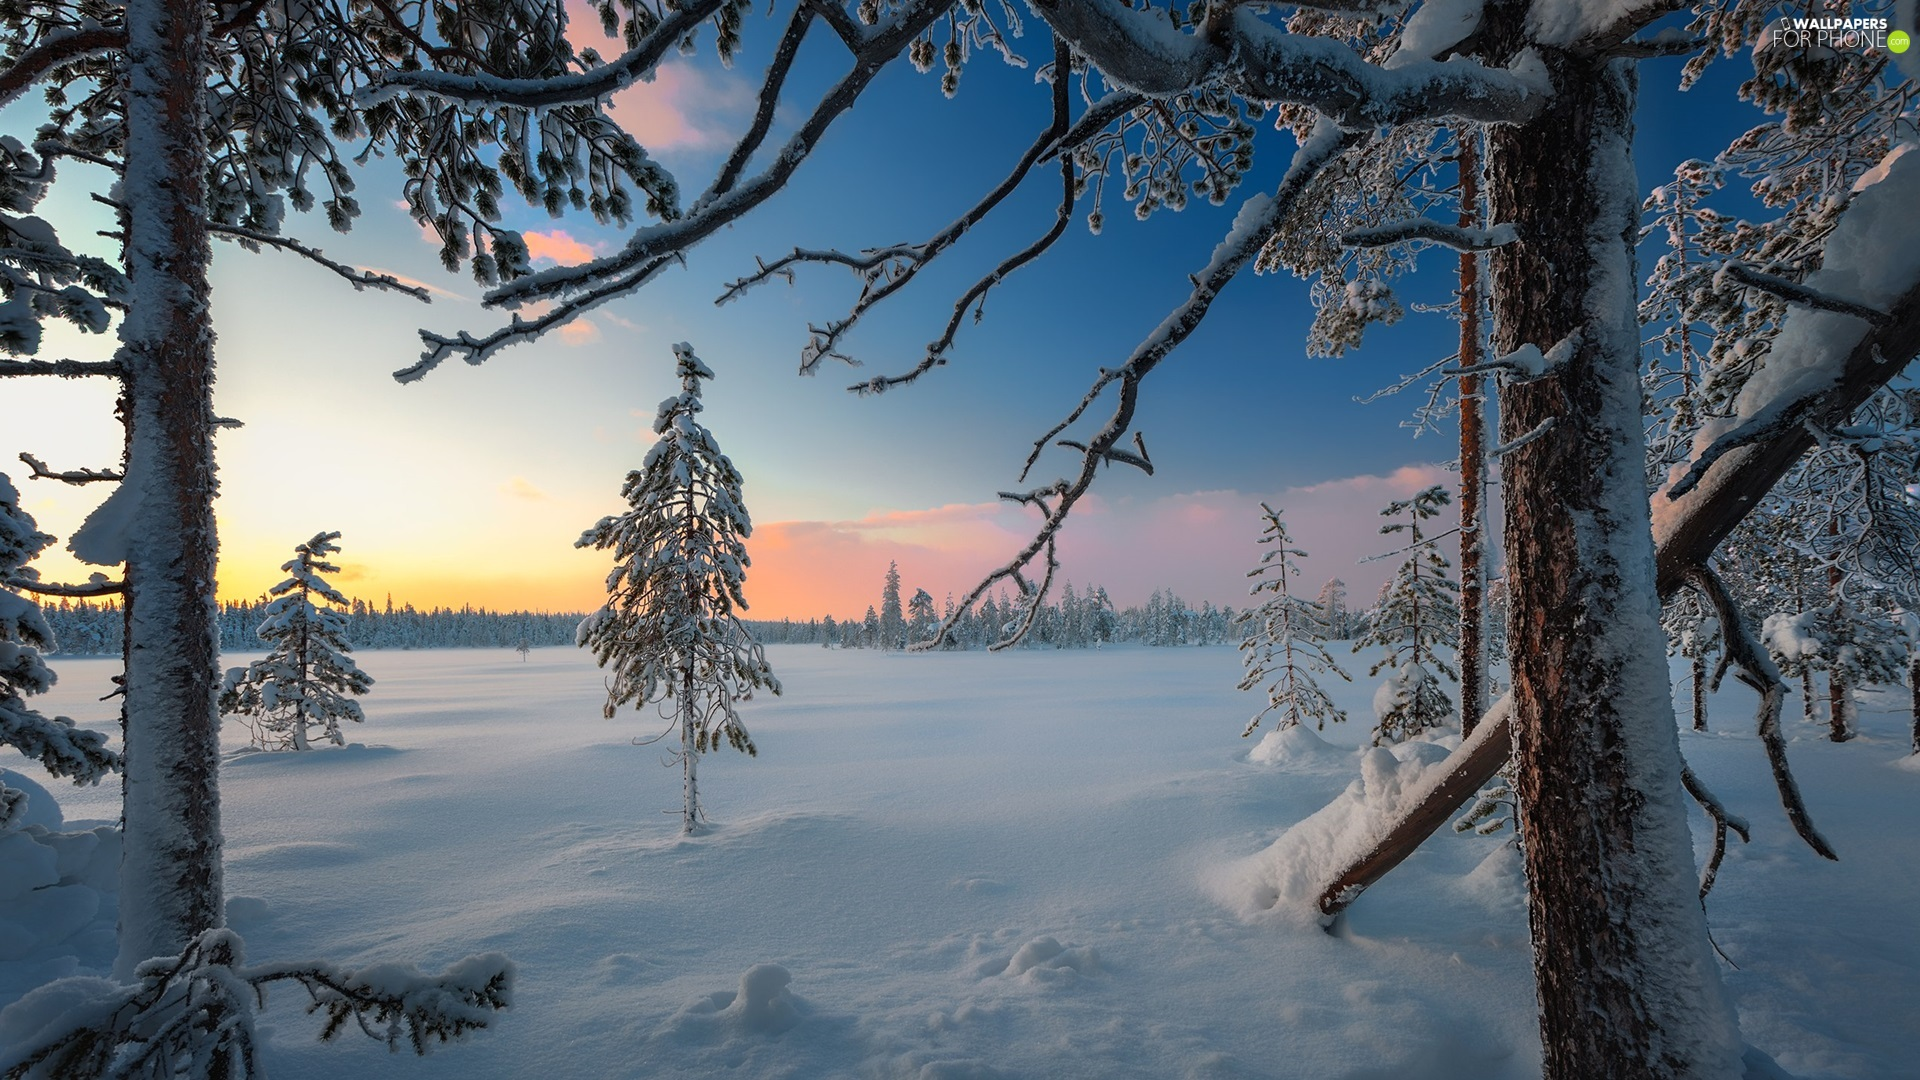 Snowy, winter, viewes, car in the meadow, trees, forest